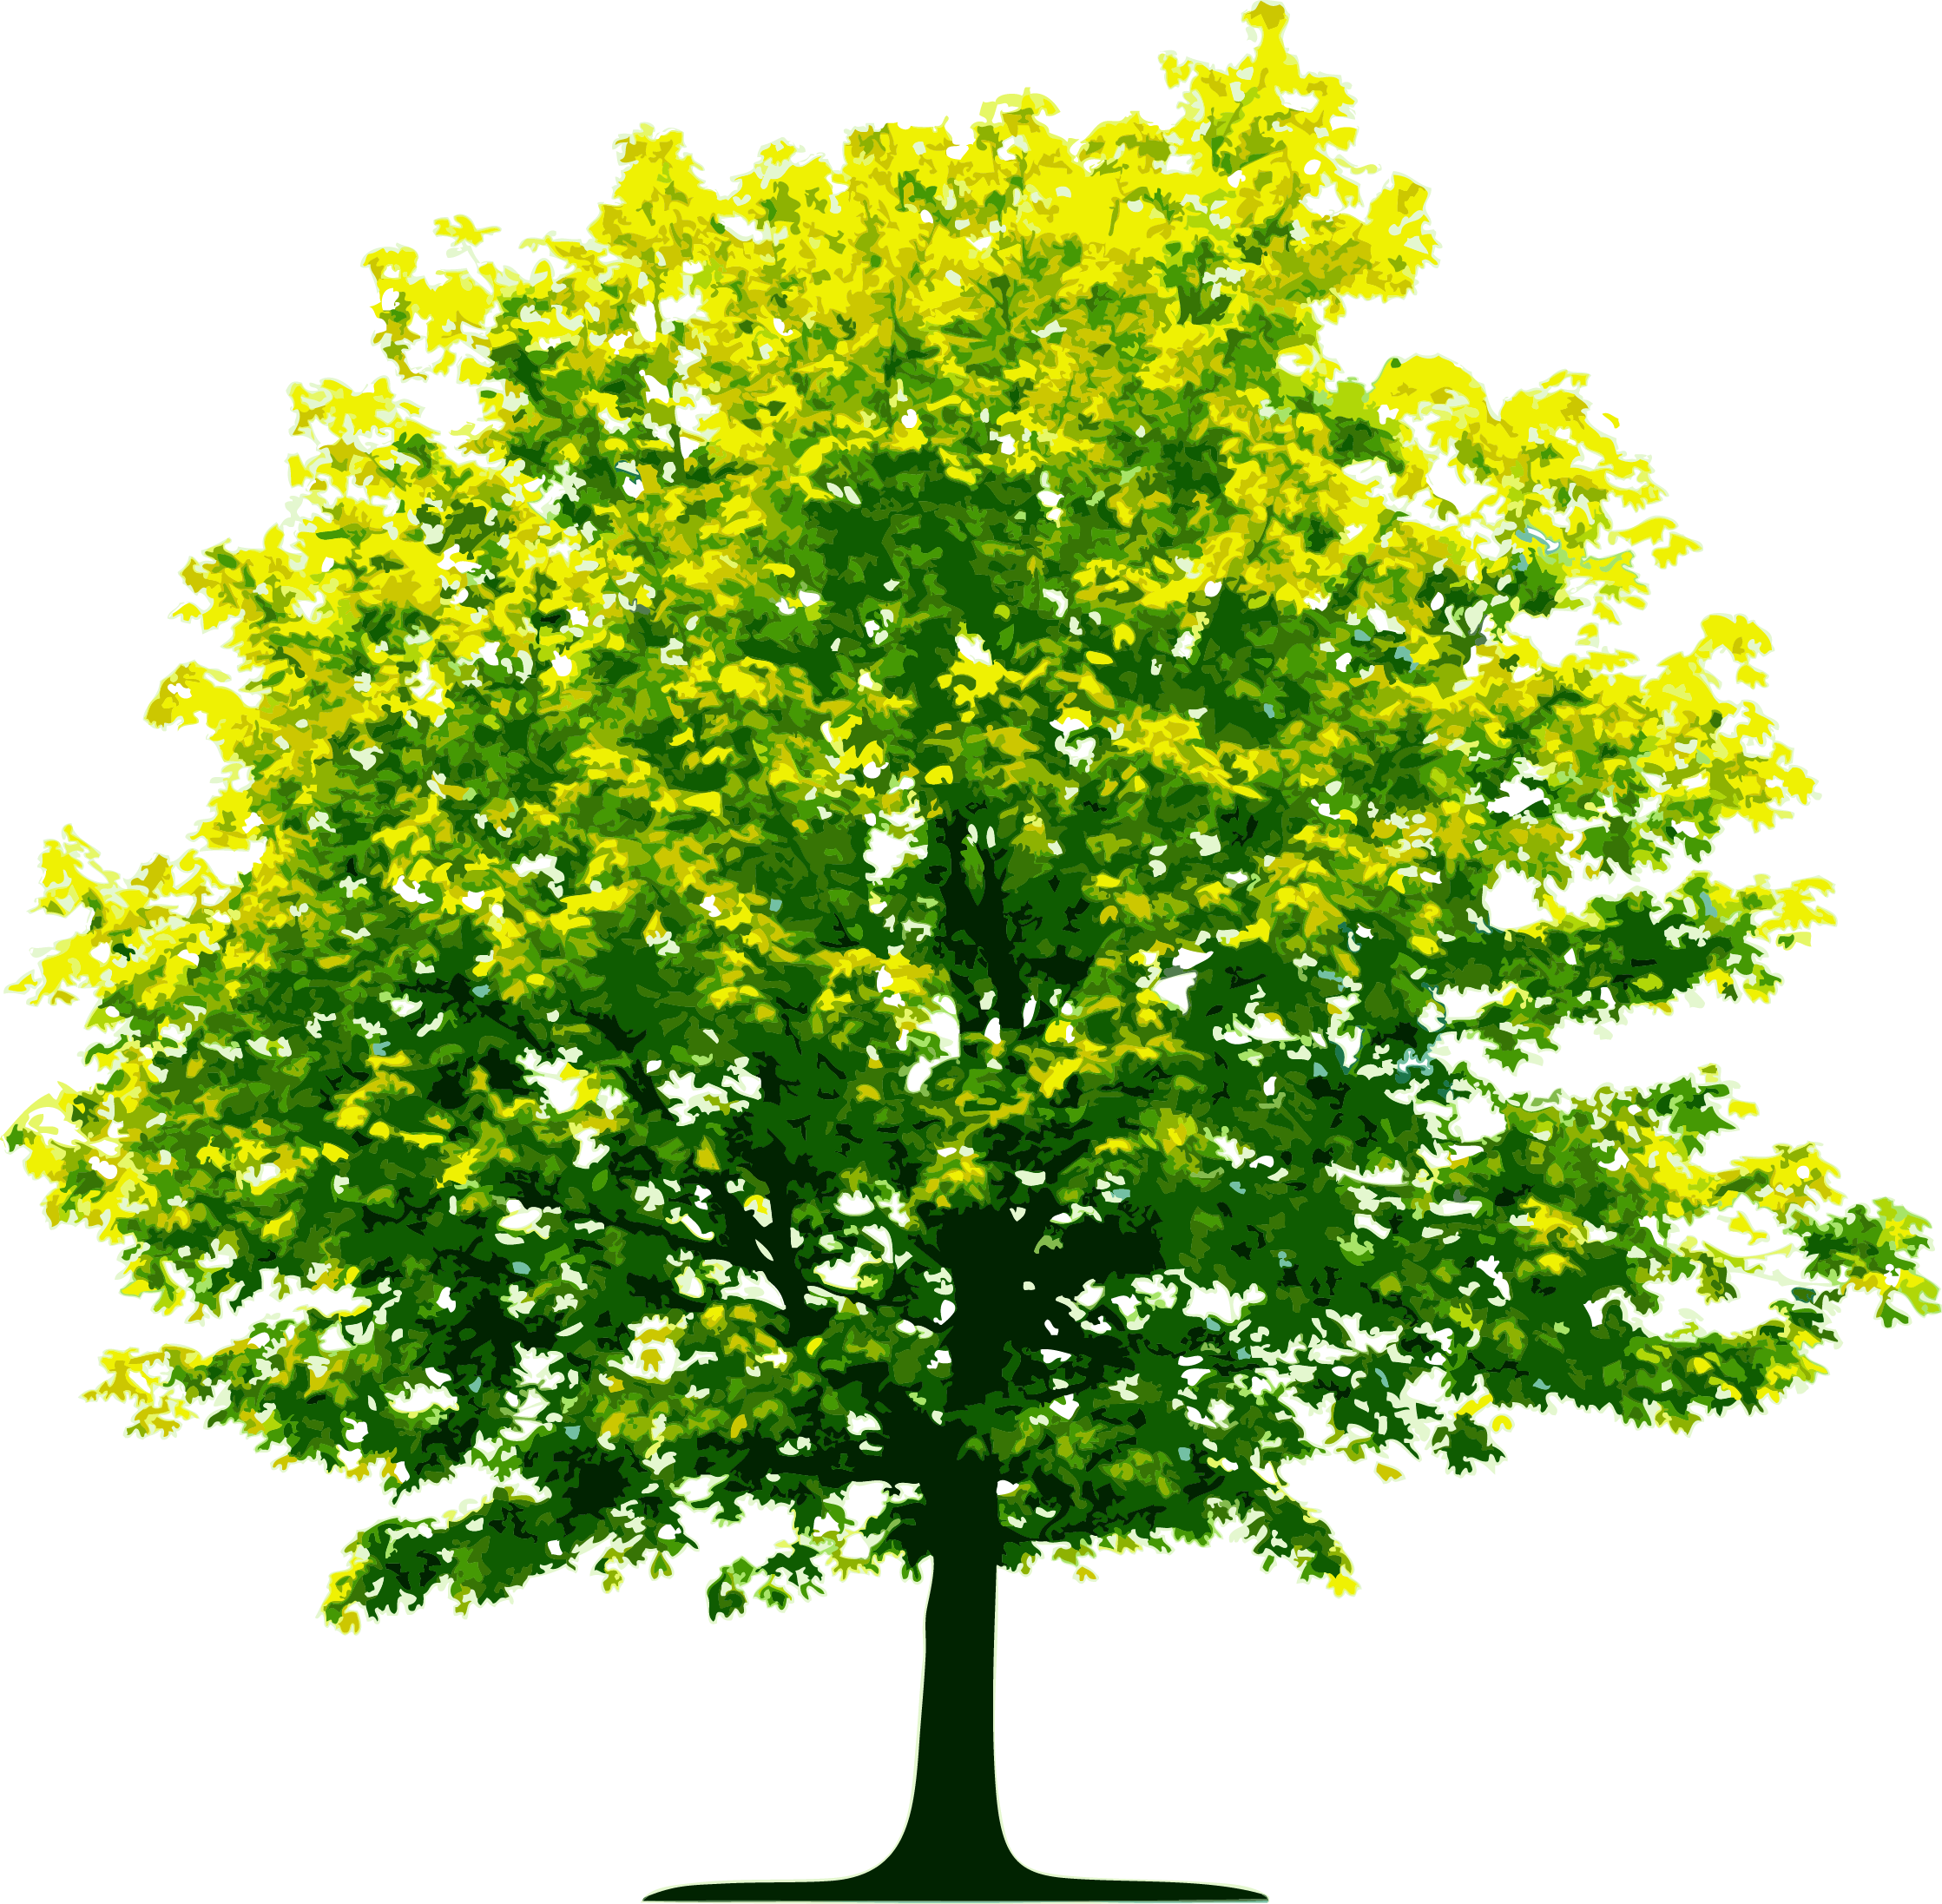 Summer tree png. Image free download picture